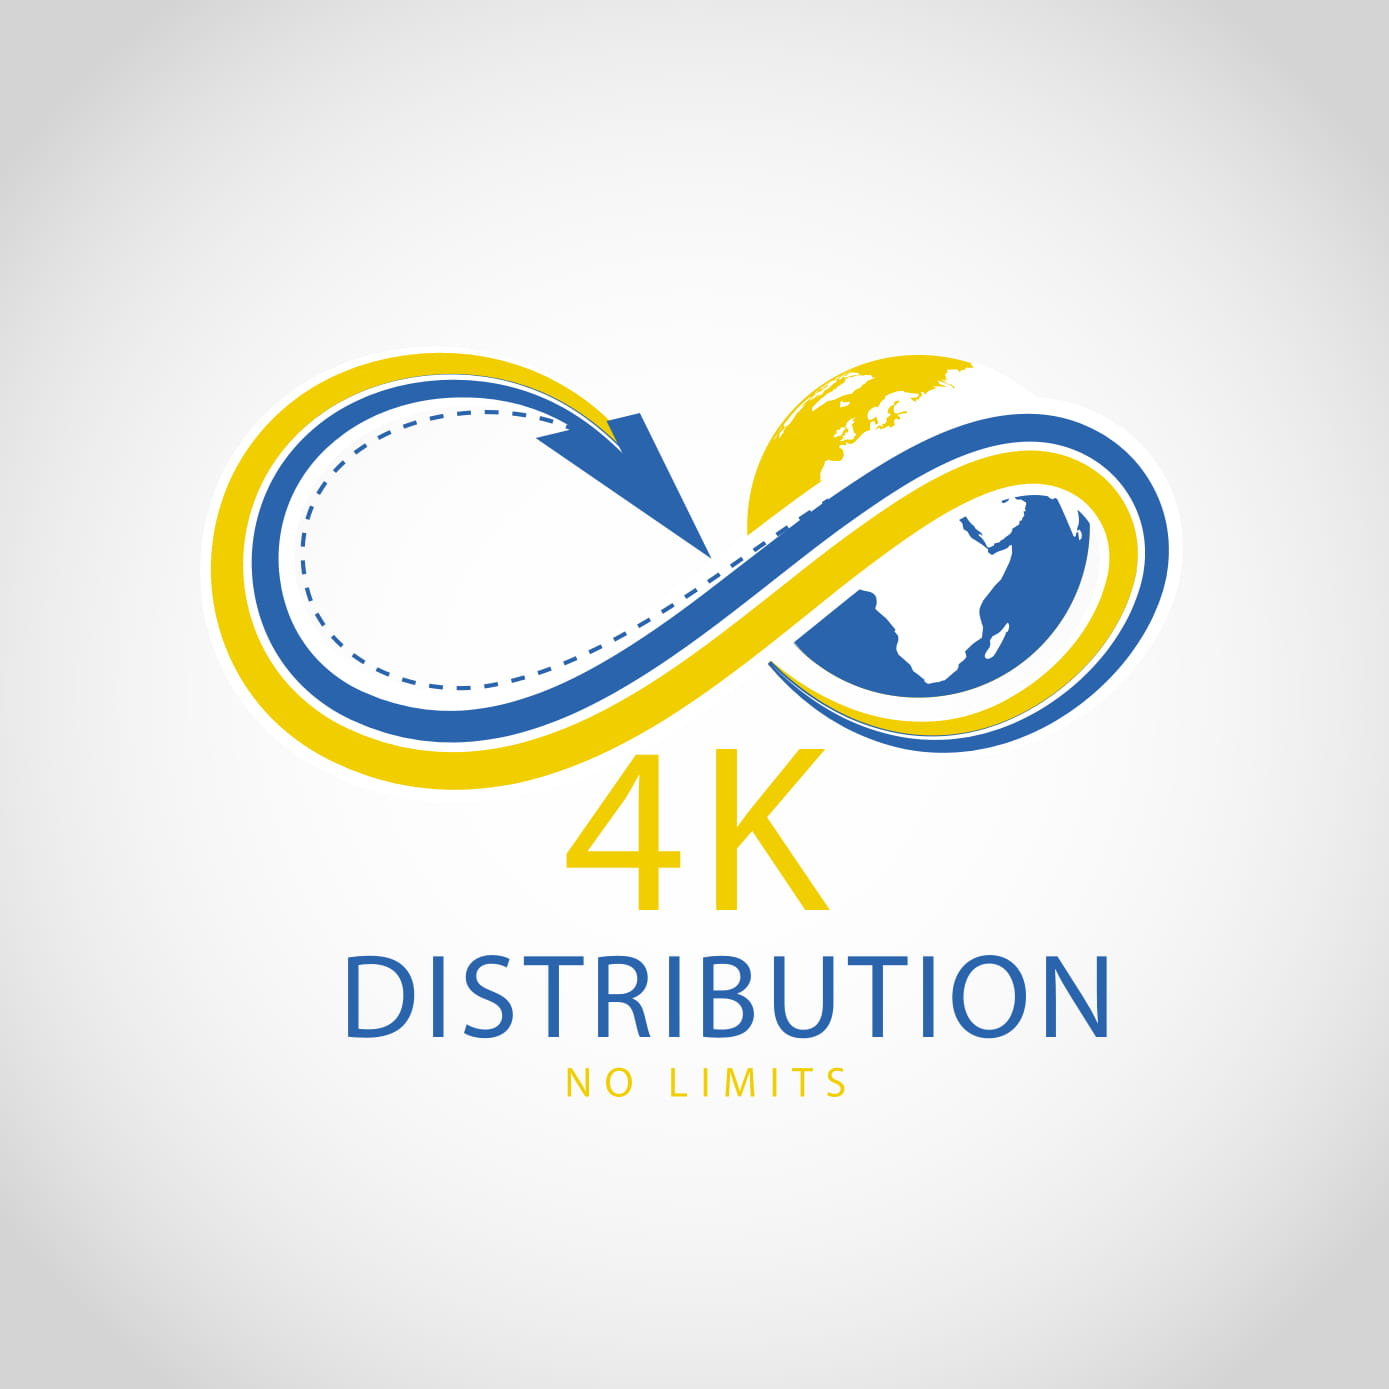 4K Distribution